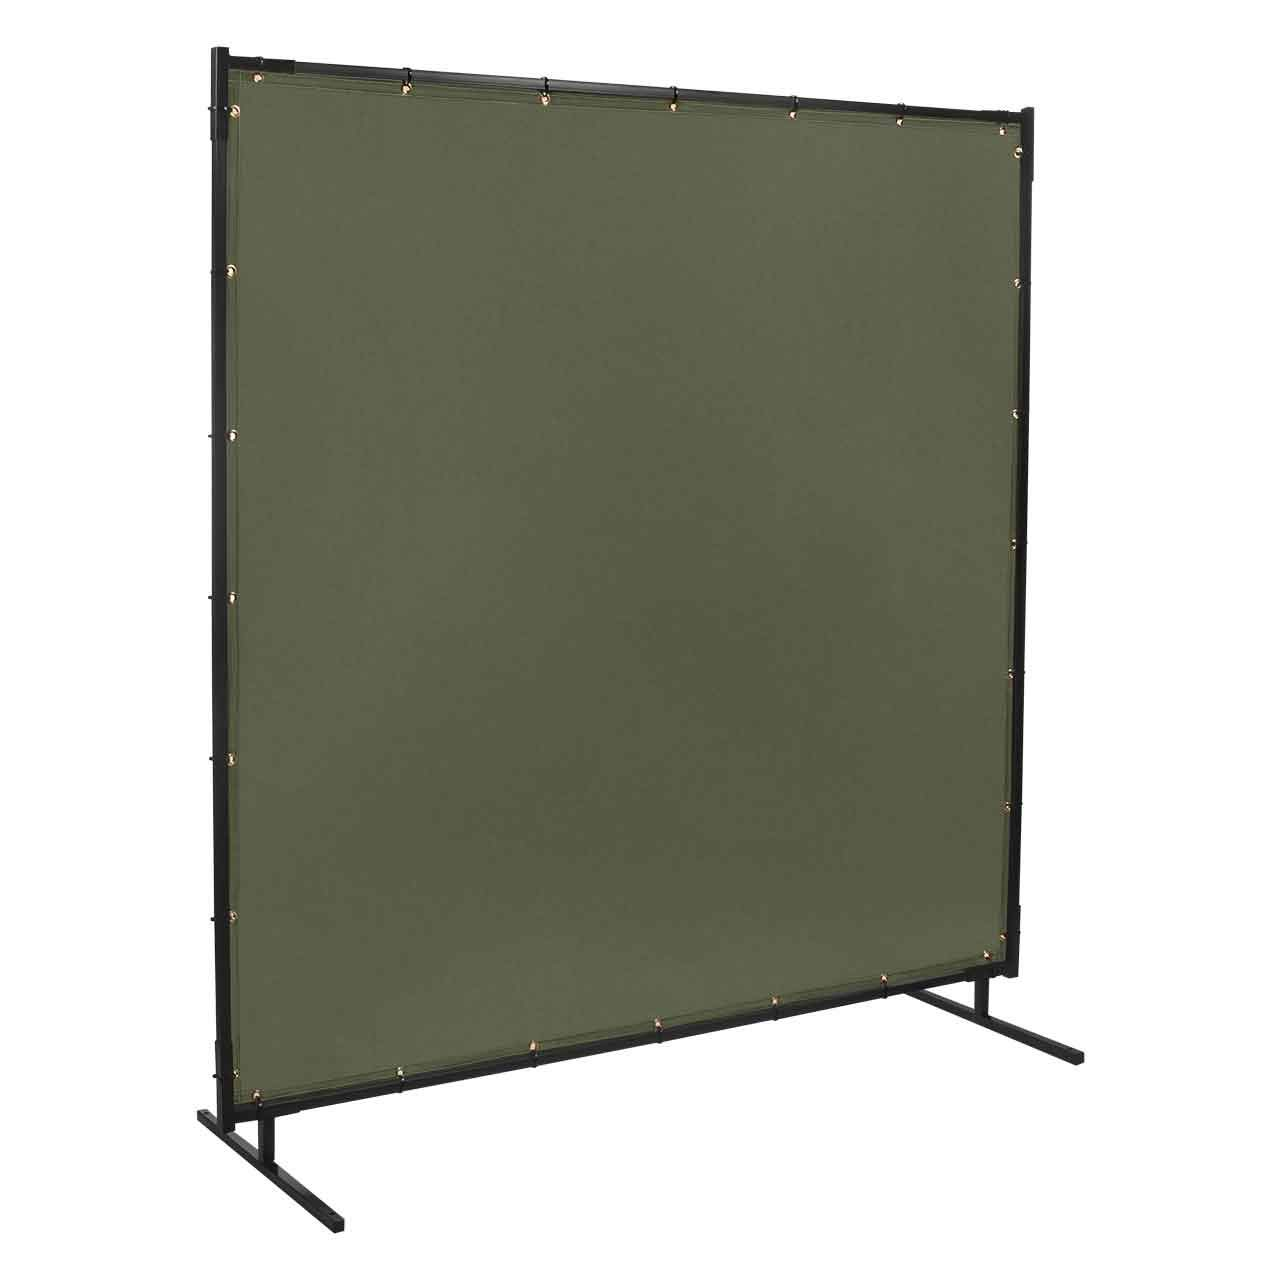 Steiner 501-6X8 Protect-O-Screen Classic Welding Screen with Flame Retardant 12-Ounce Canvas Curtain, Duck Olive Green, 6' x 8' by Steiner